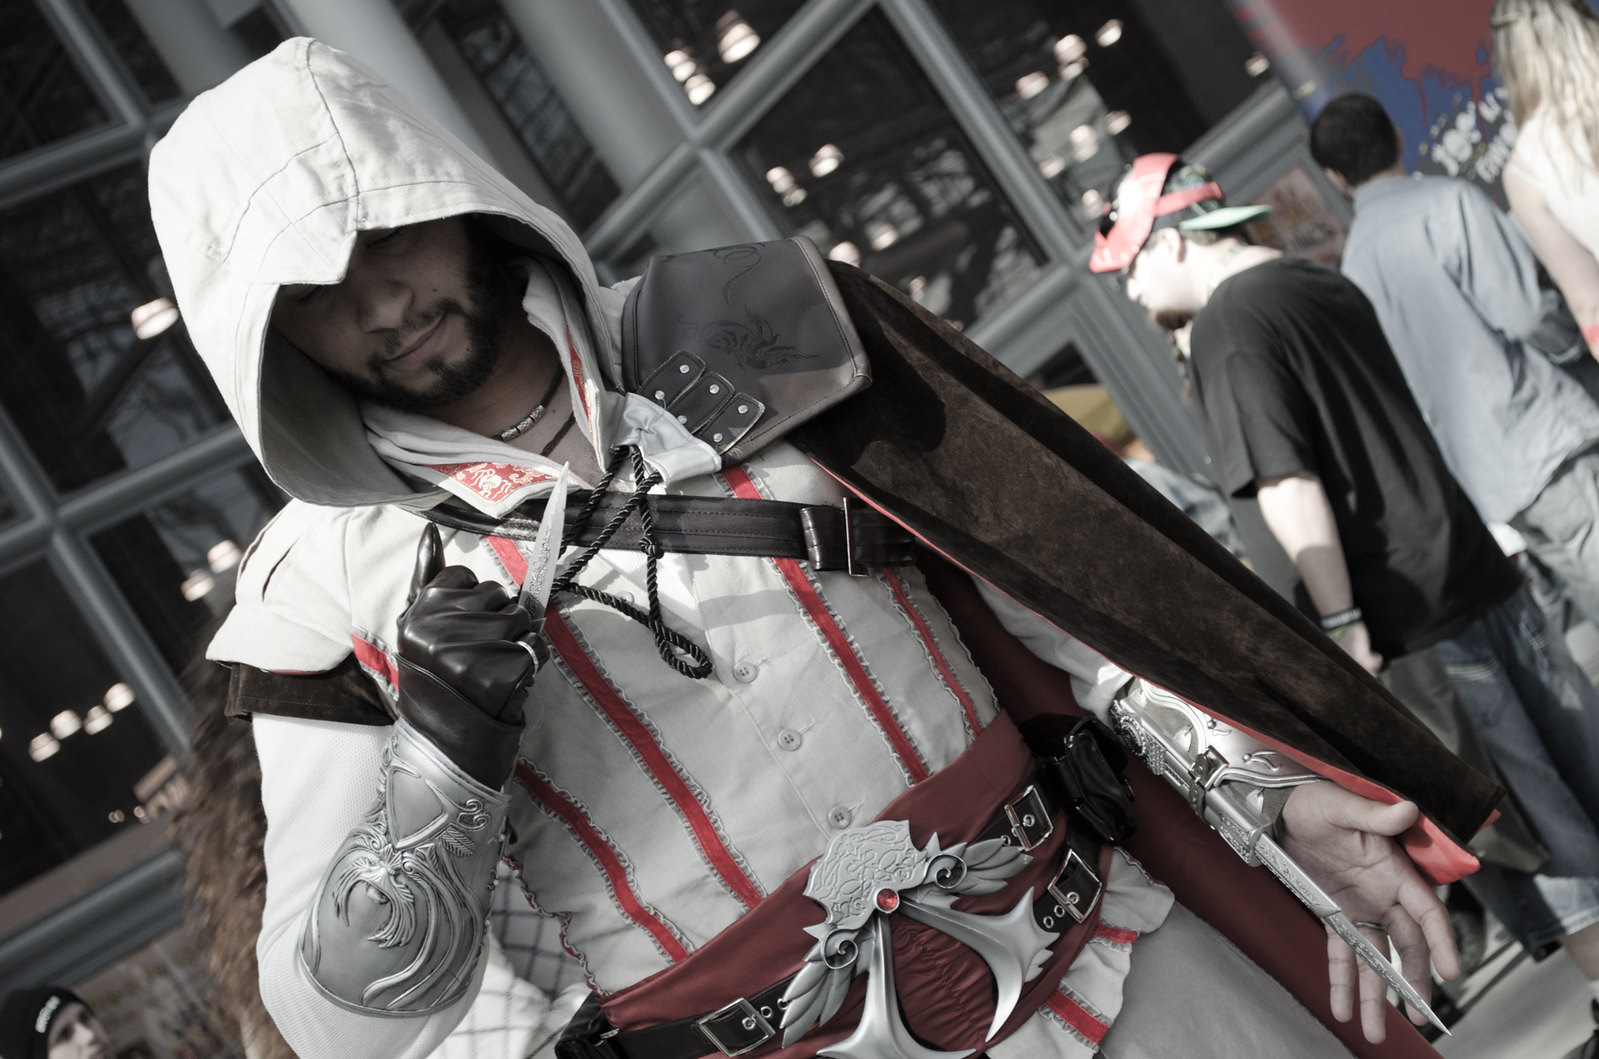 NYCC 2013 Assassin's Creed Cosplay